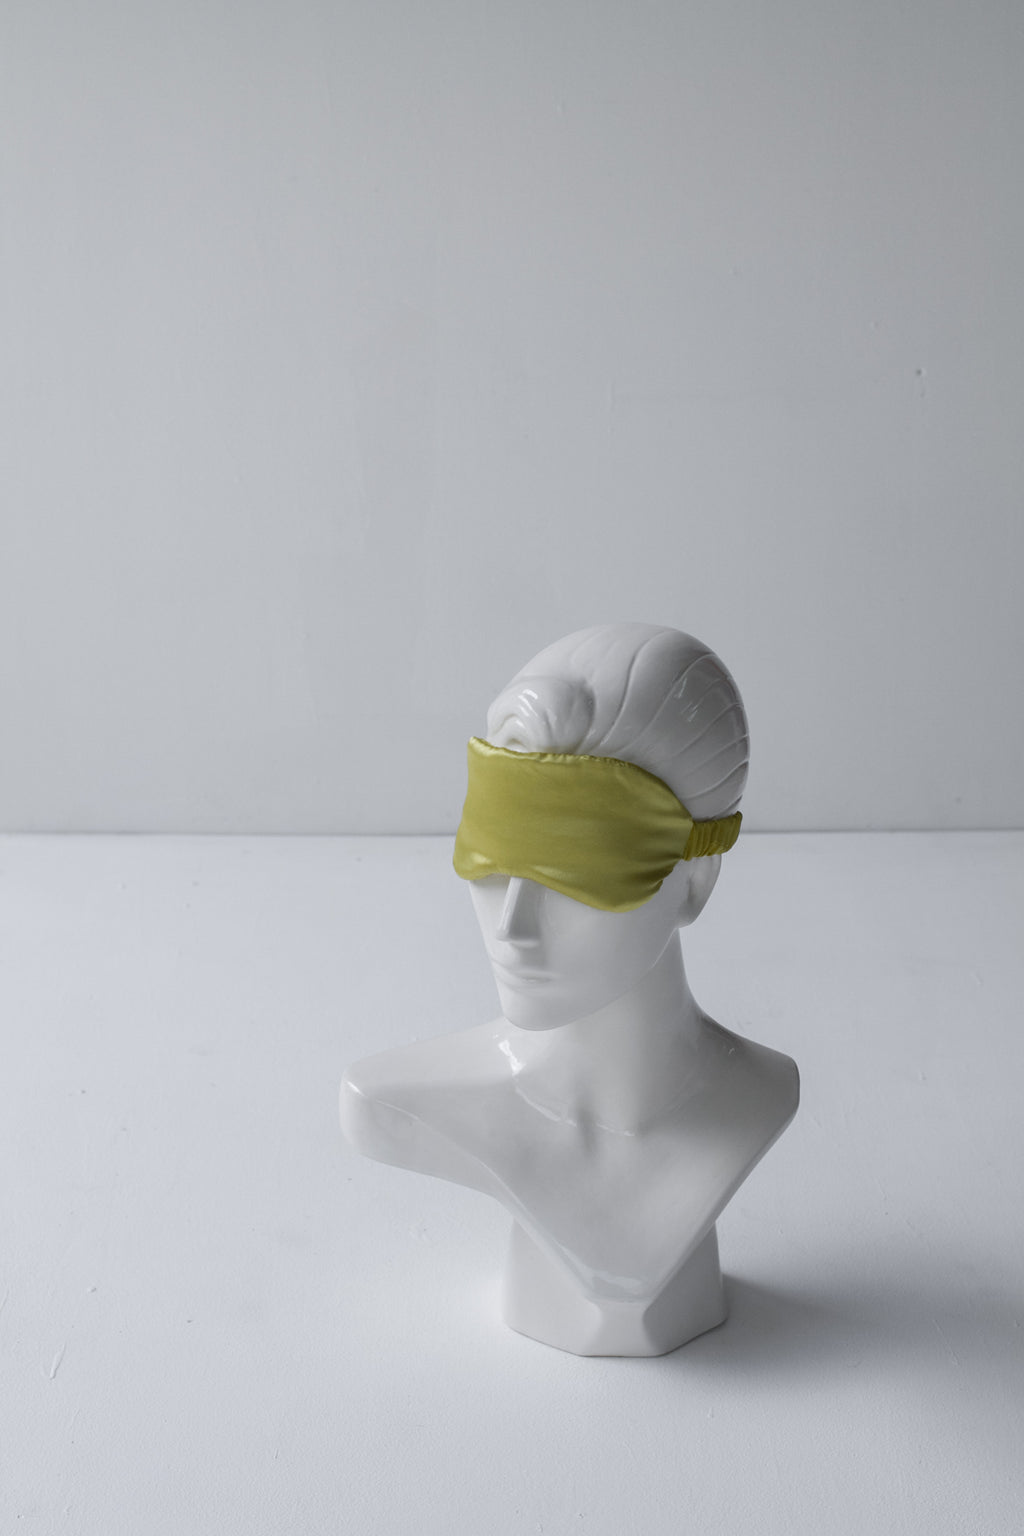 Silk Sleeping Mask-Obra Gris-Zero-Waste-Design-Costa-Rica